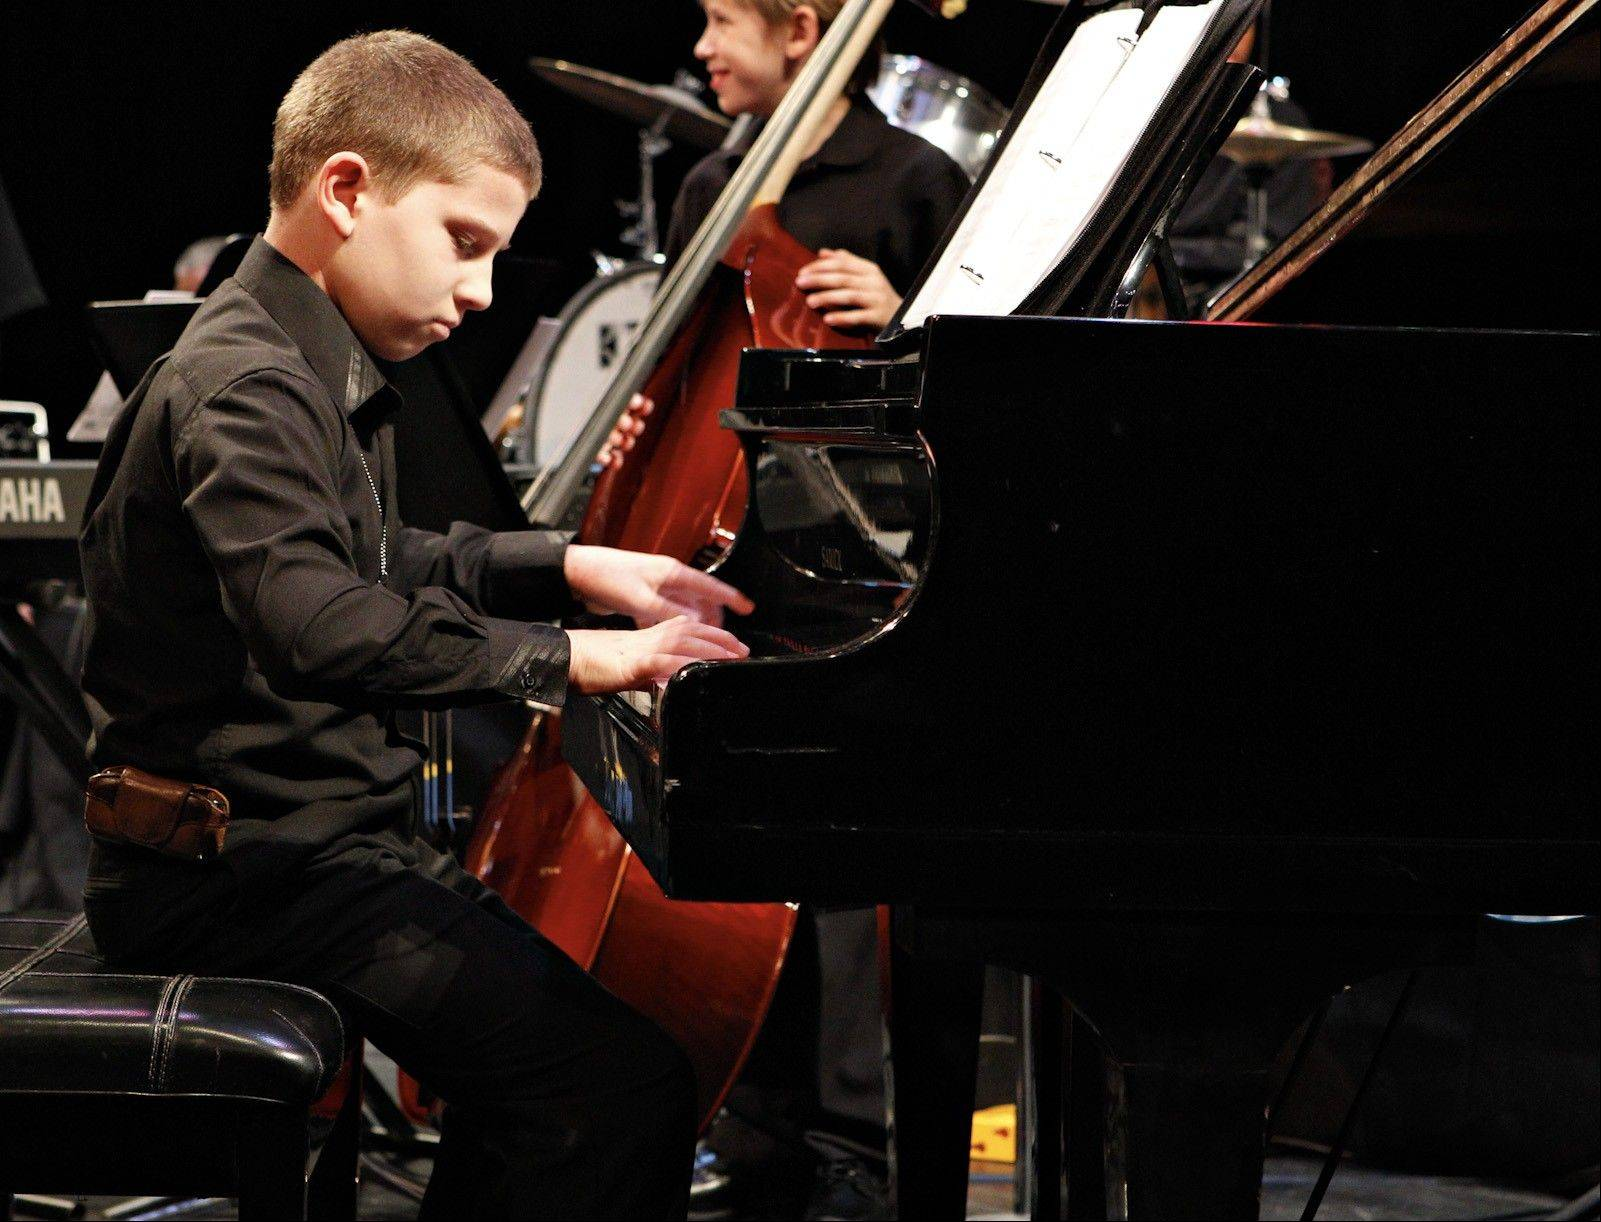 Billy Gensel, 11, warms up before playing with a jazz ensemble. With his severe allergies, the piano surface must be wiped clean with alcohol before he can sit down and play.